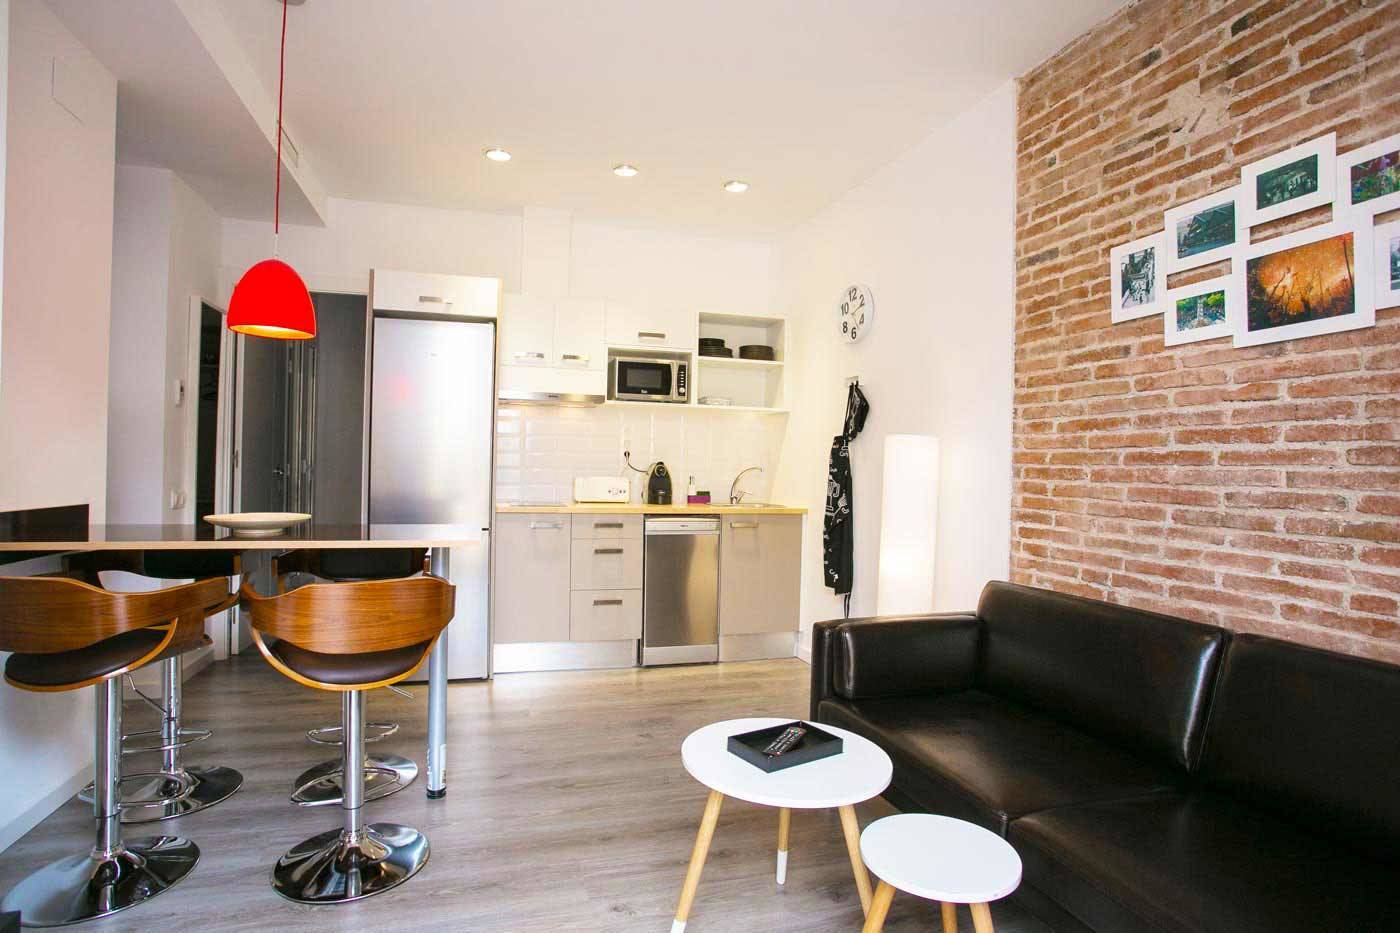 Appartements touristiques les bons plans de barcelone for Appartement deco cinema